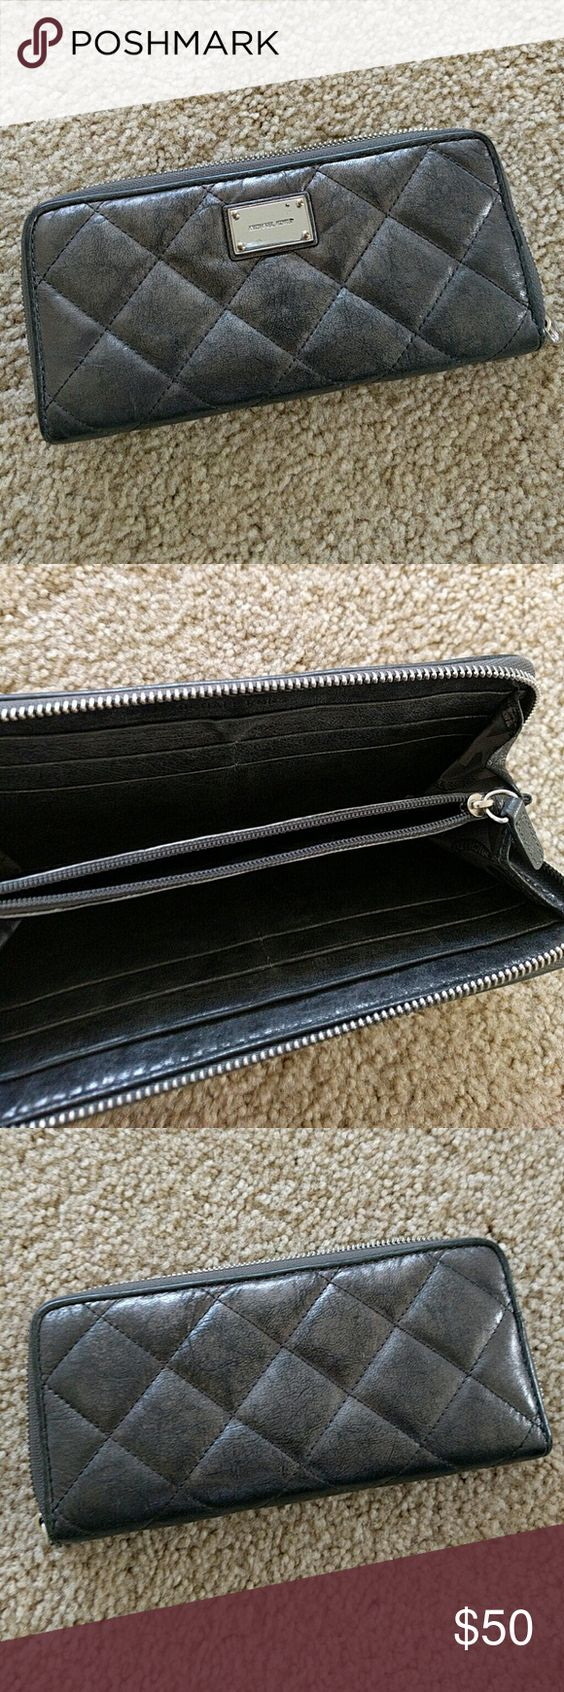 Michael Kors Michael Kors gunmetal quilted wallet in used but still good condition. Some wear on the metal tag (see picture) Michael Kors Bags Wallets